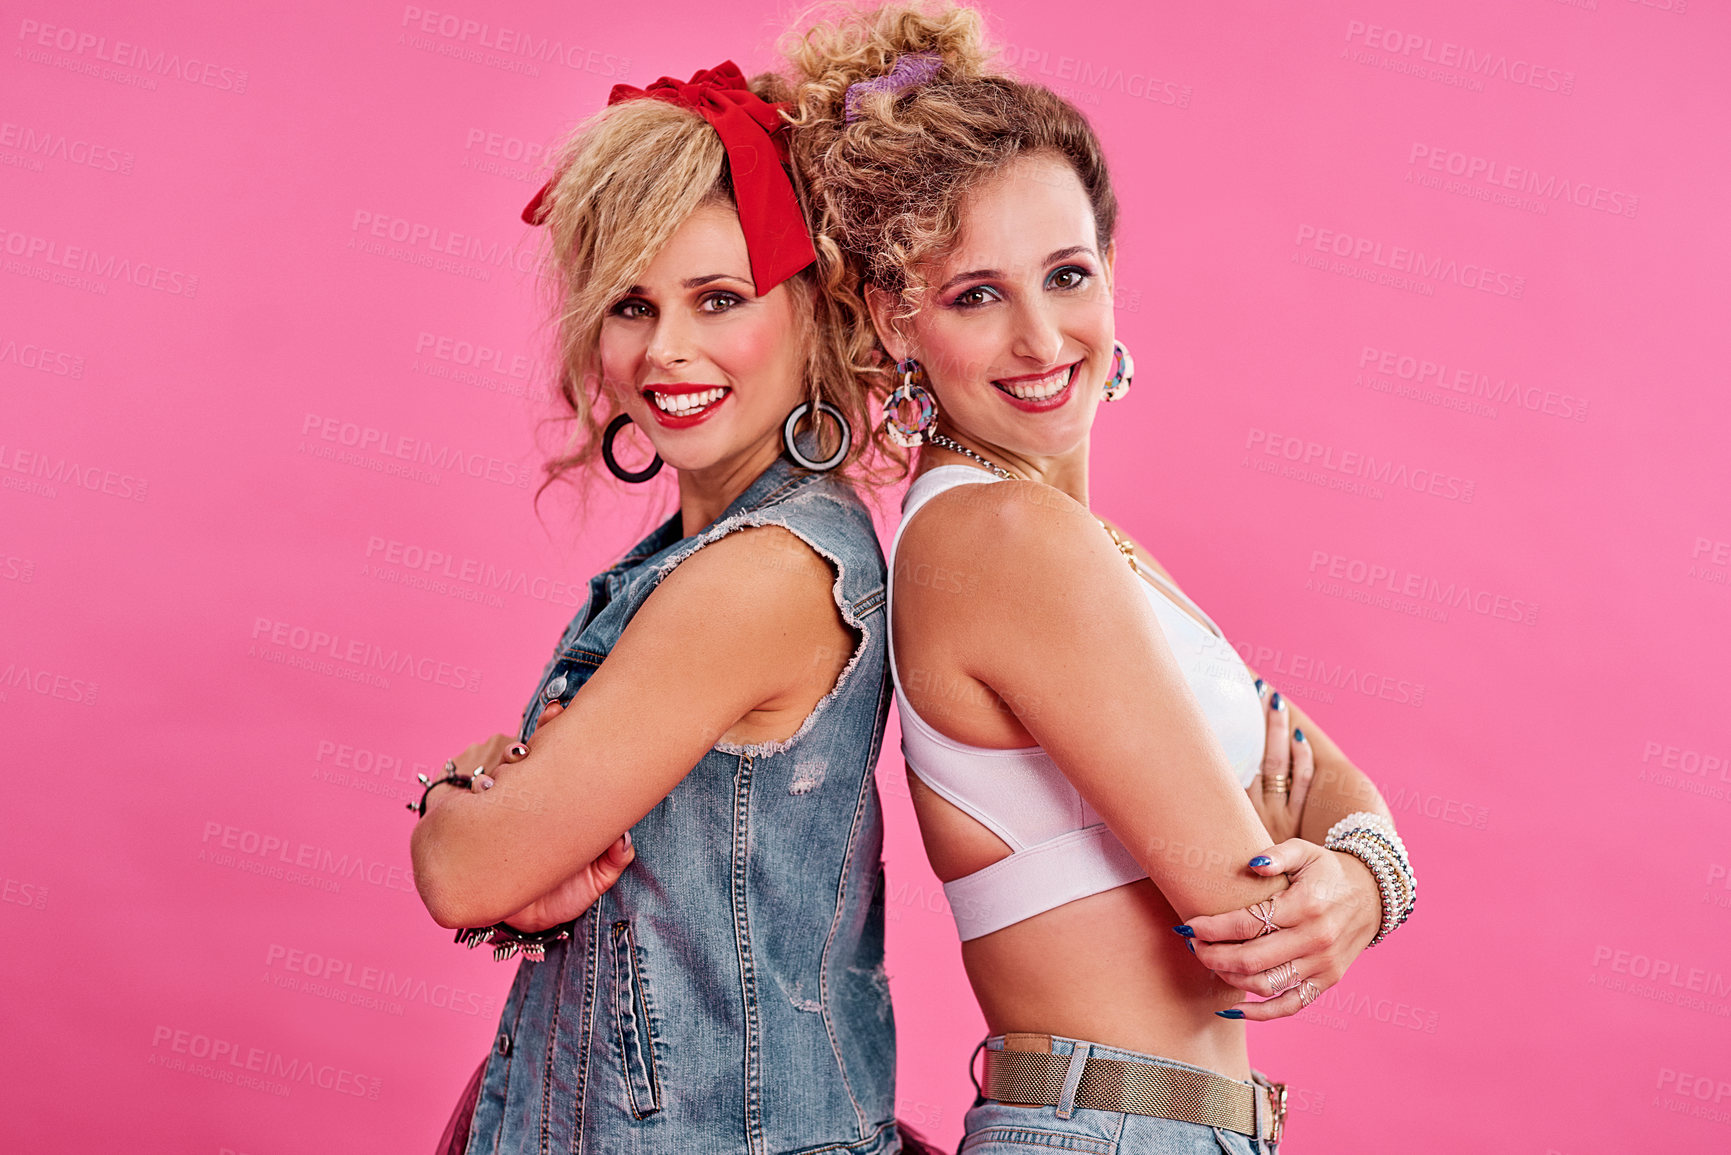 Buy stock photo Studio shot of two beautiful young women styled in 80s clothing